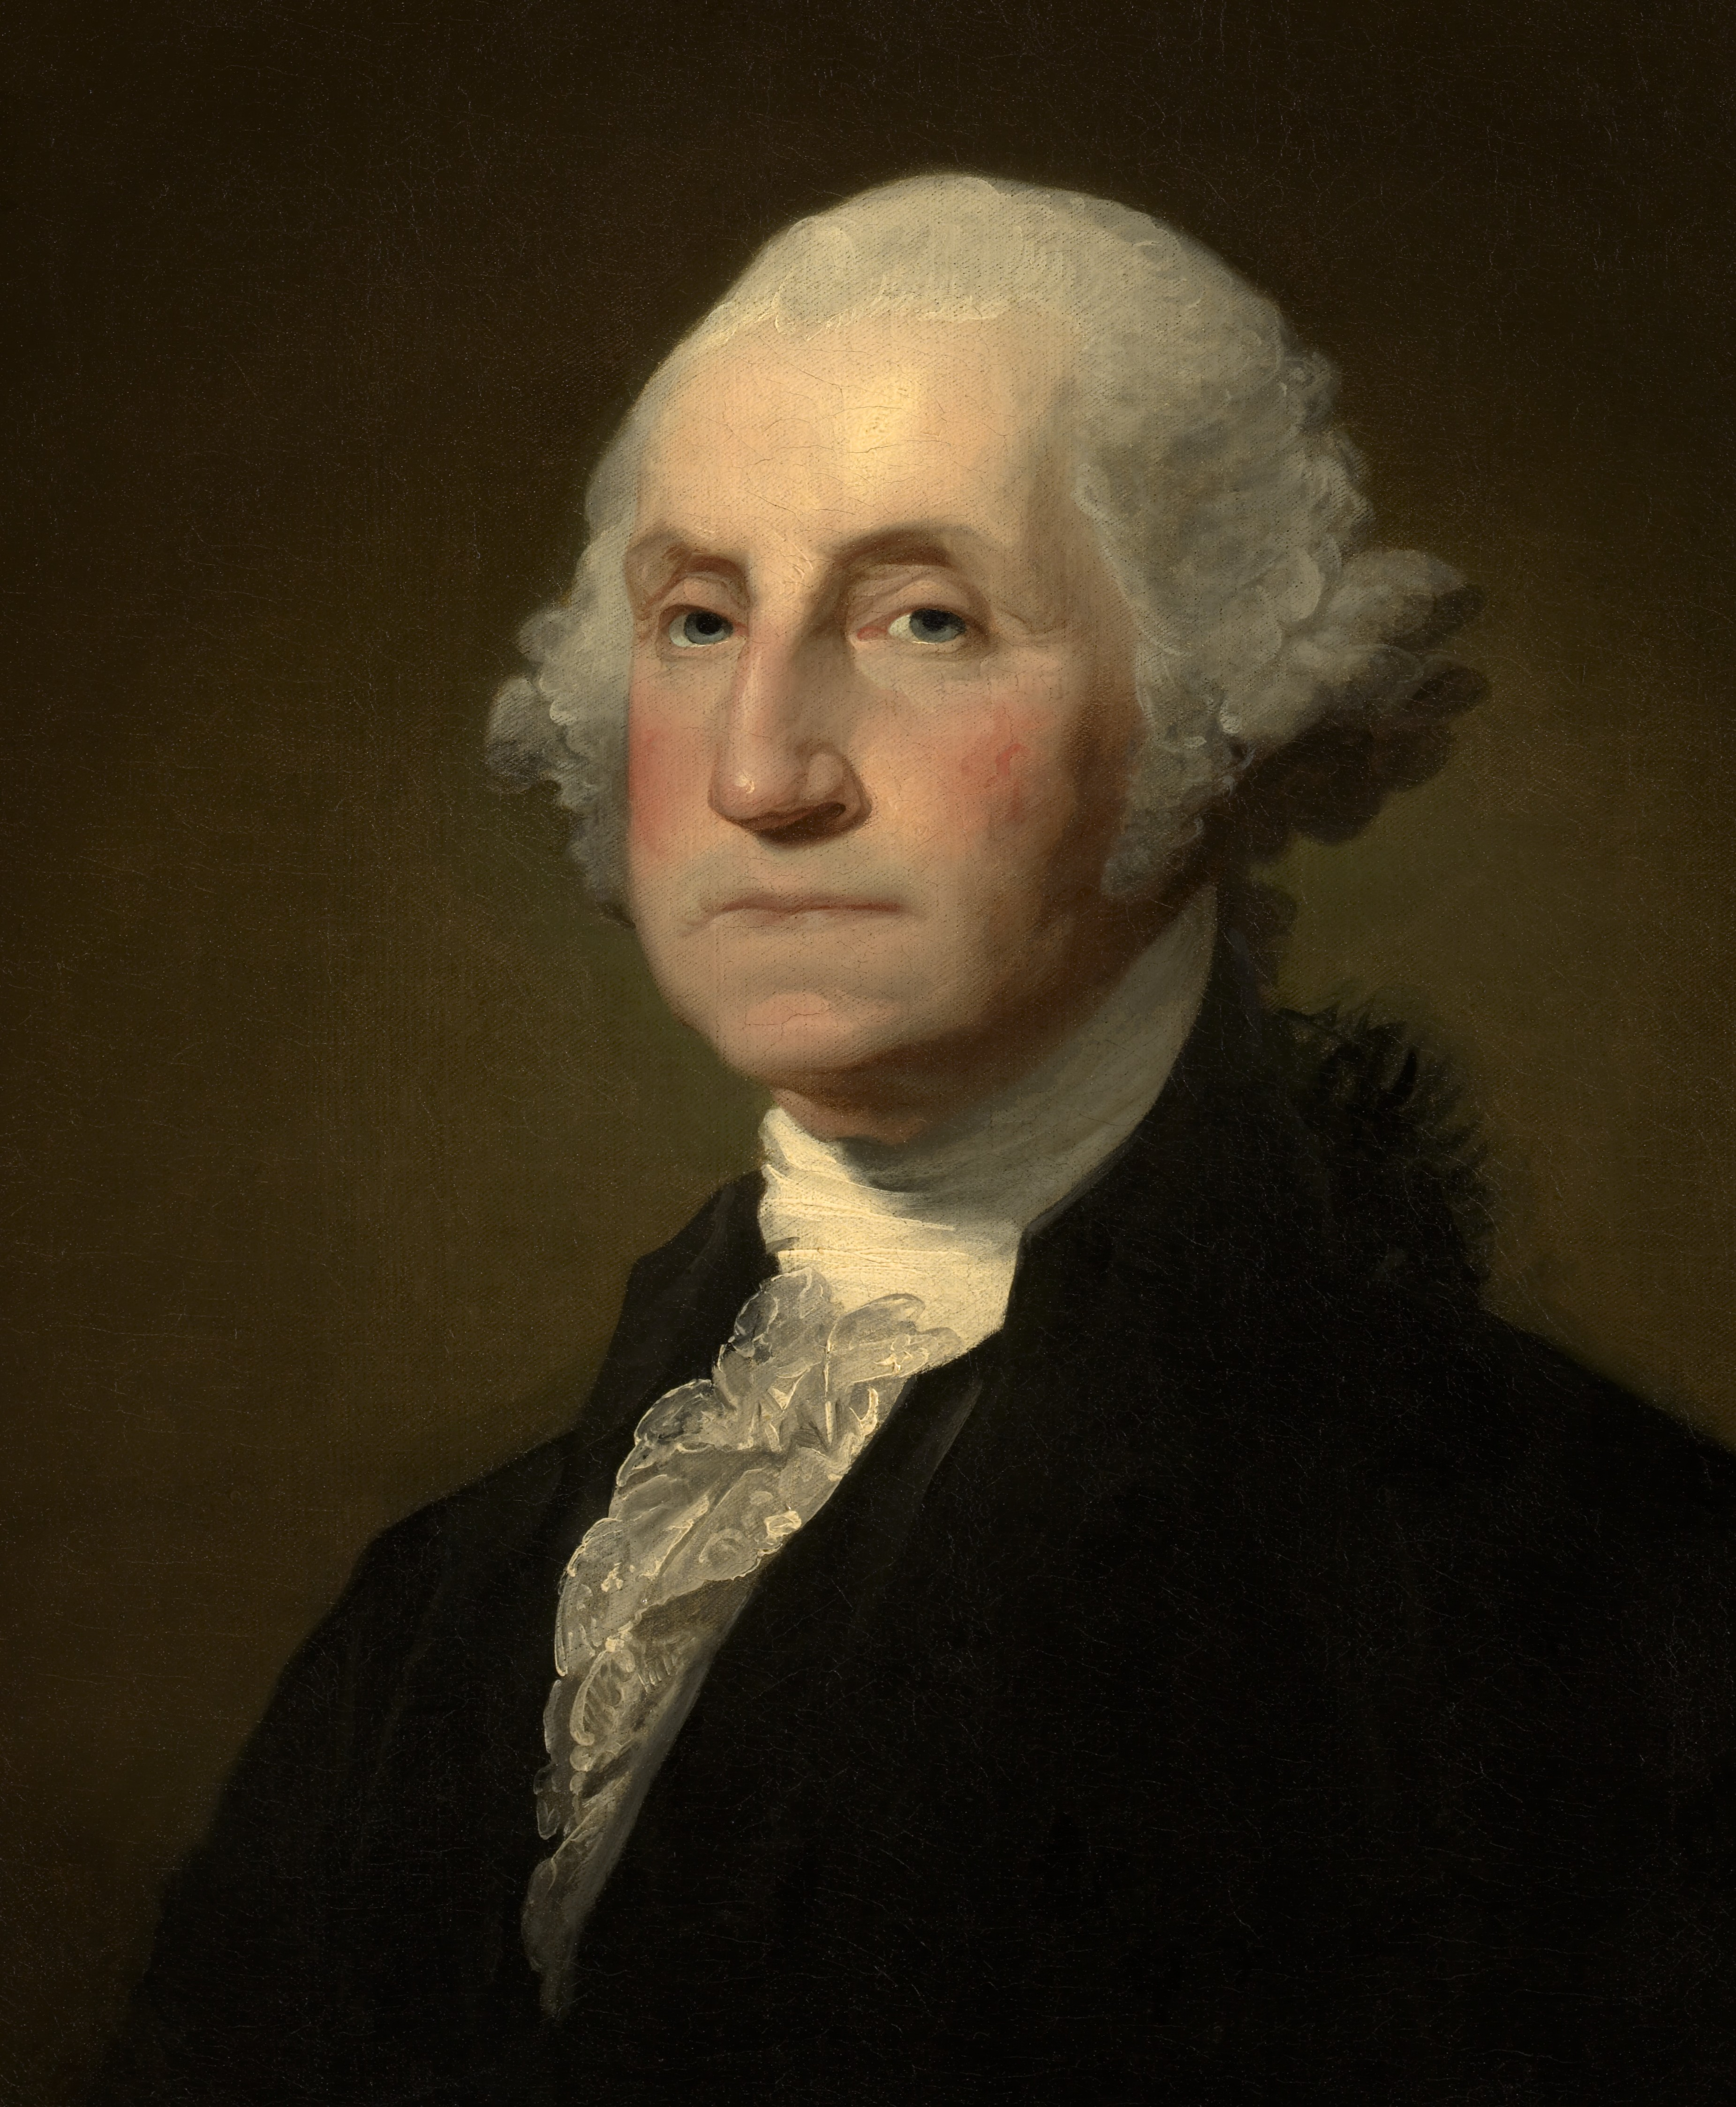 Who was the first president of America?